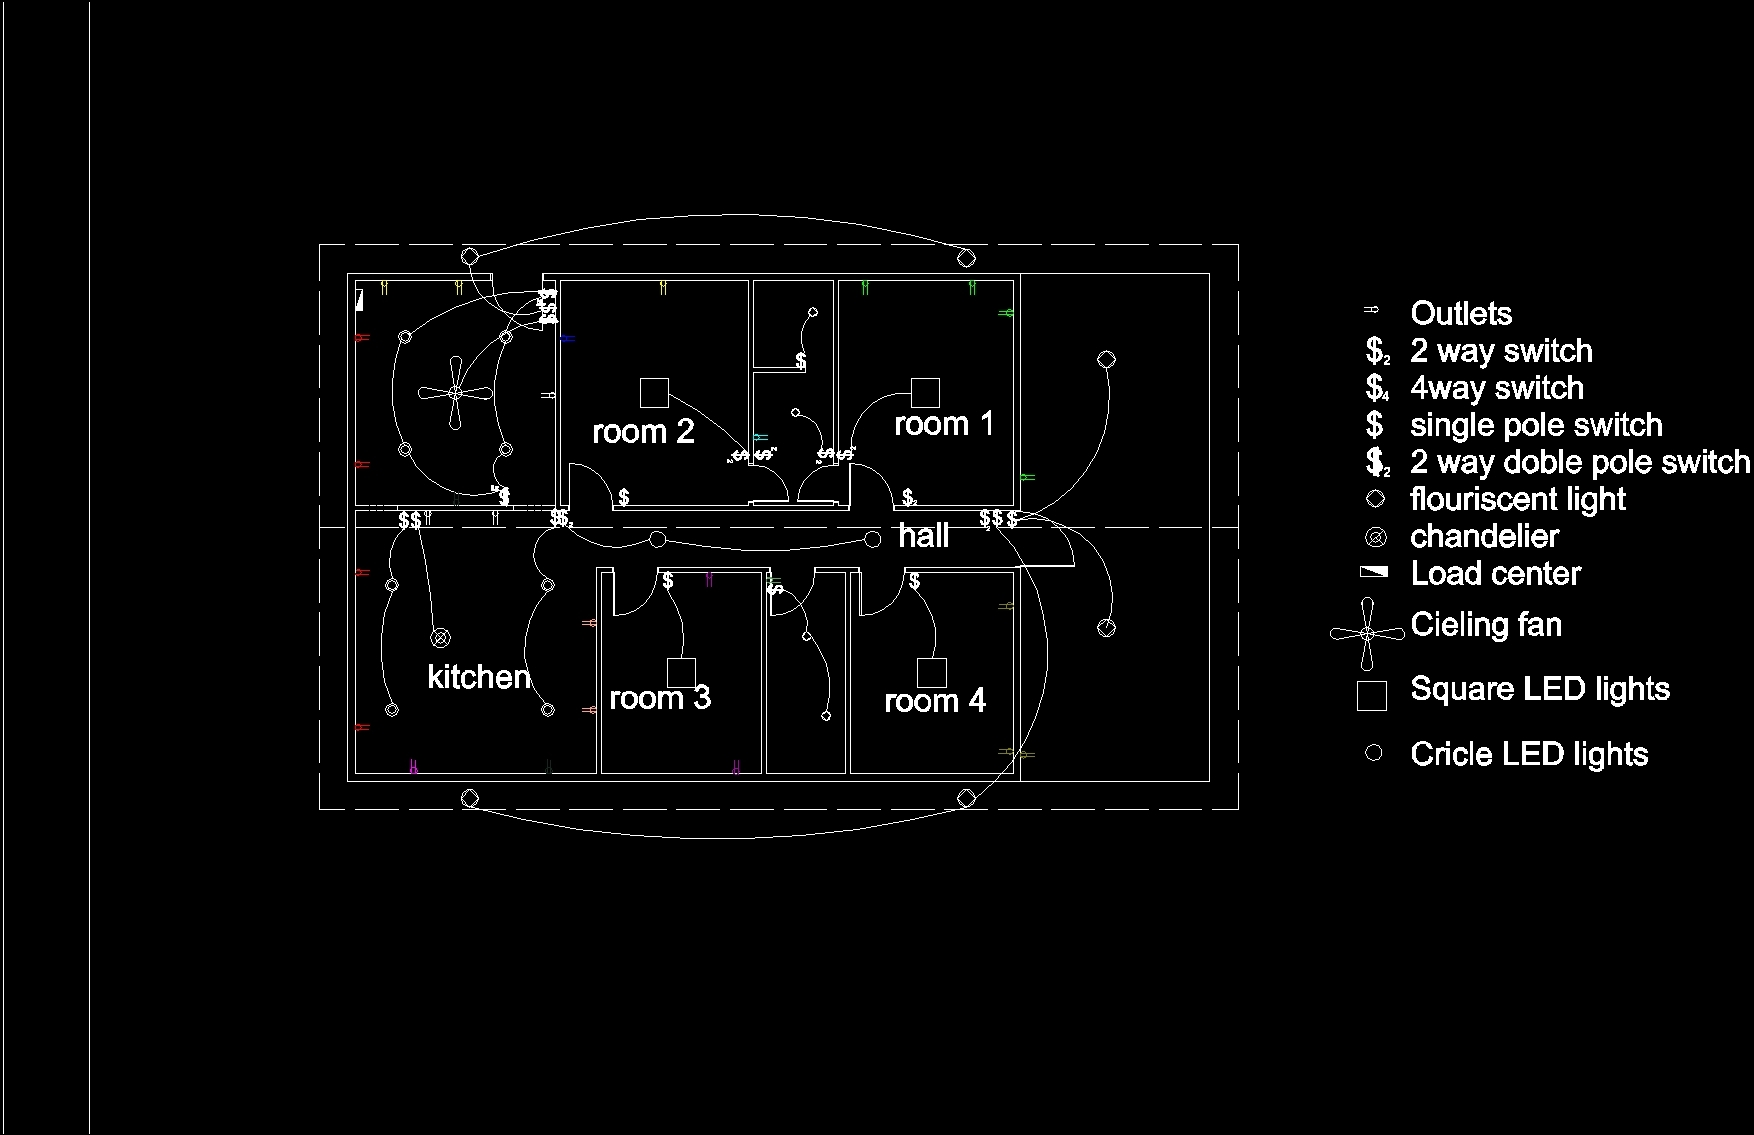 Electrica House Plan Dwg For Autocad Designs Cad 2 Way Switch Single Pole Additional Screenshots